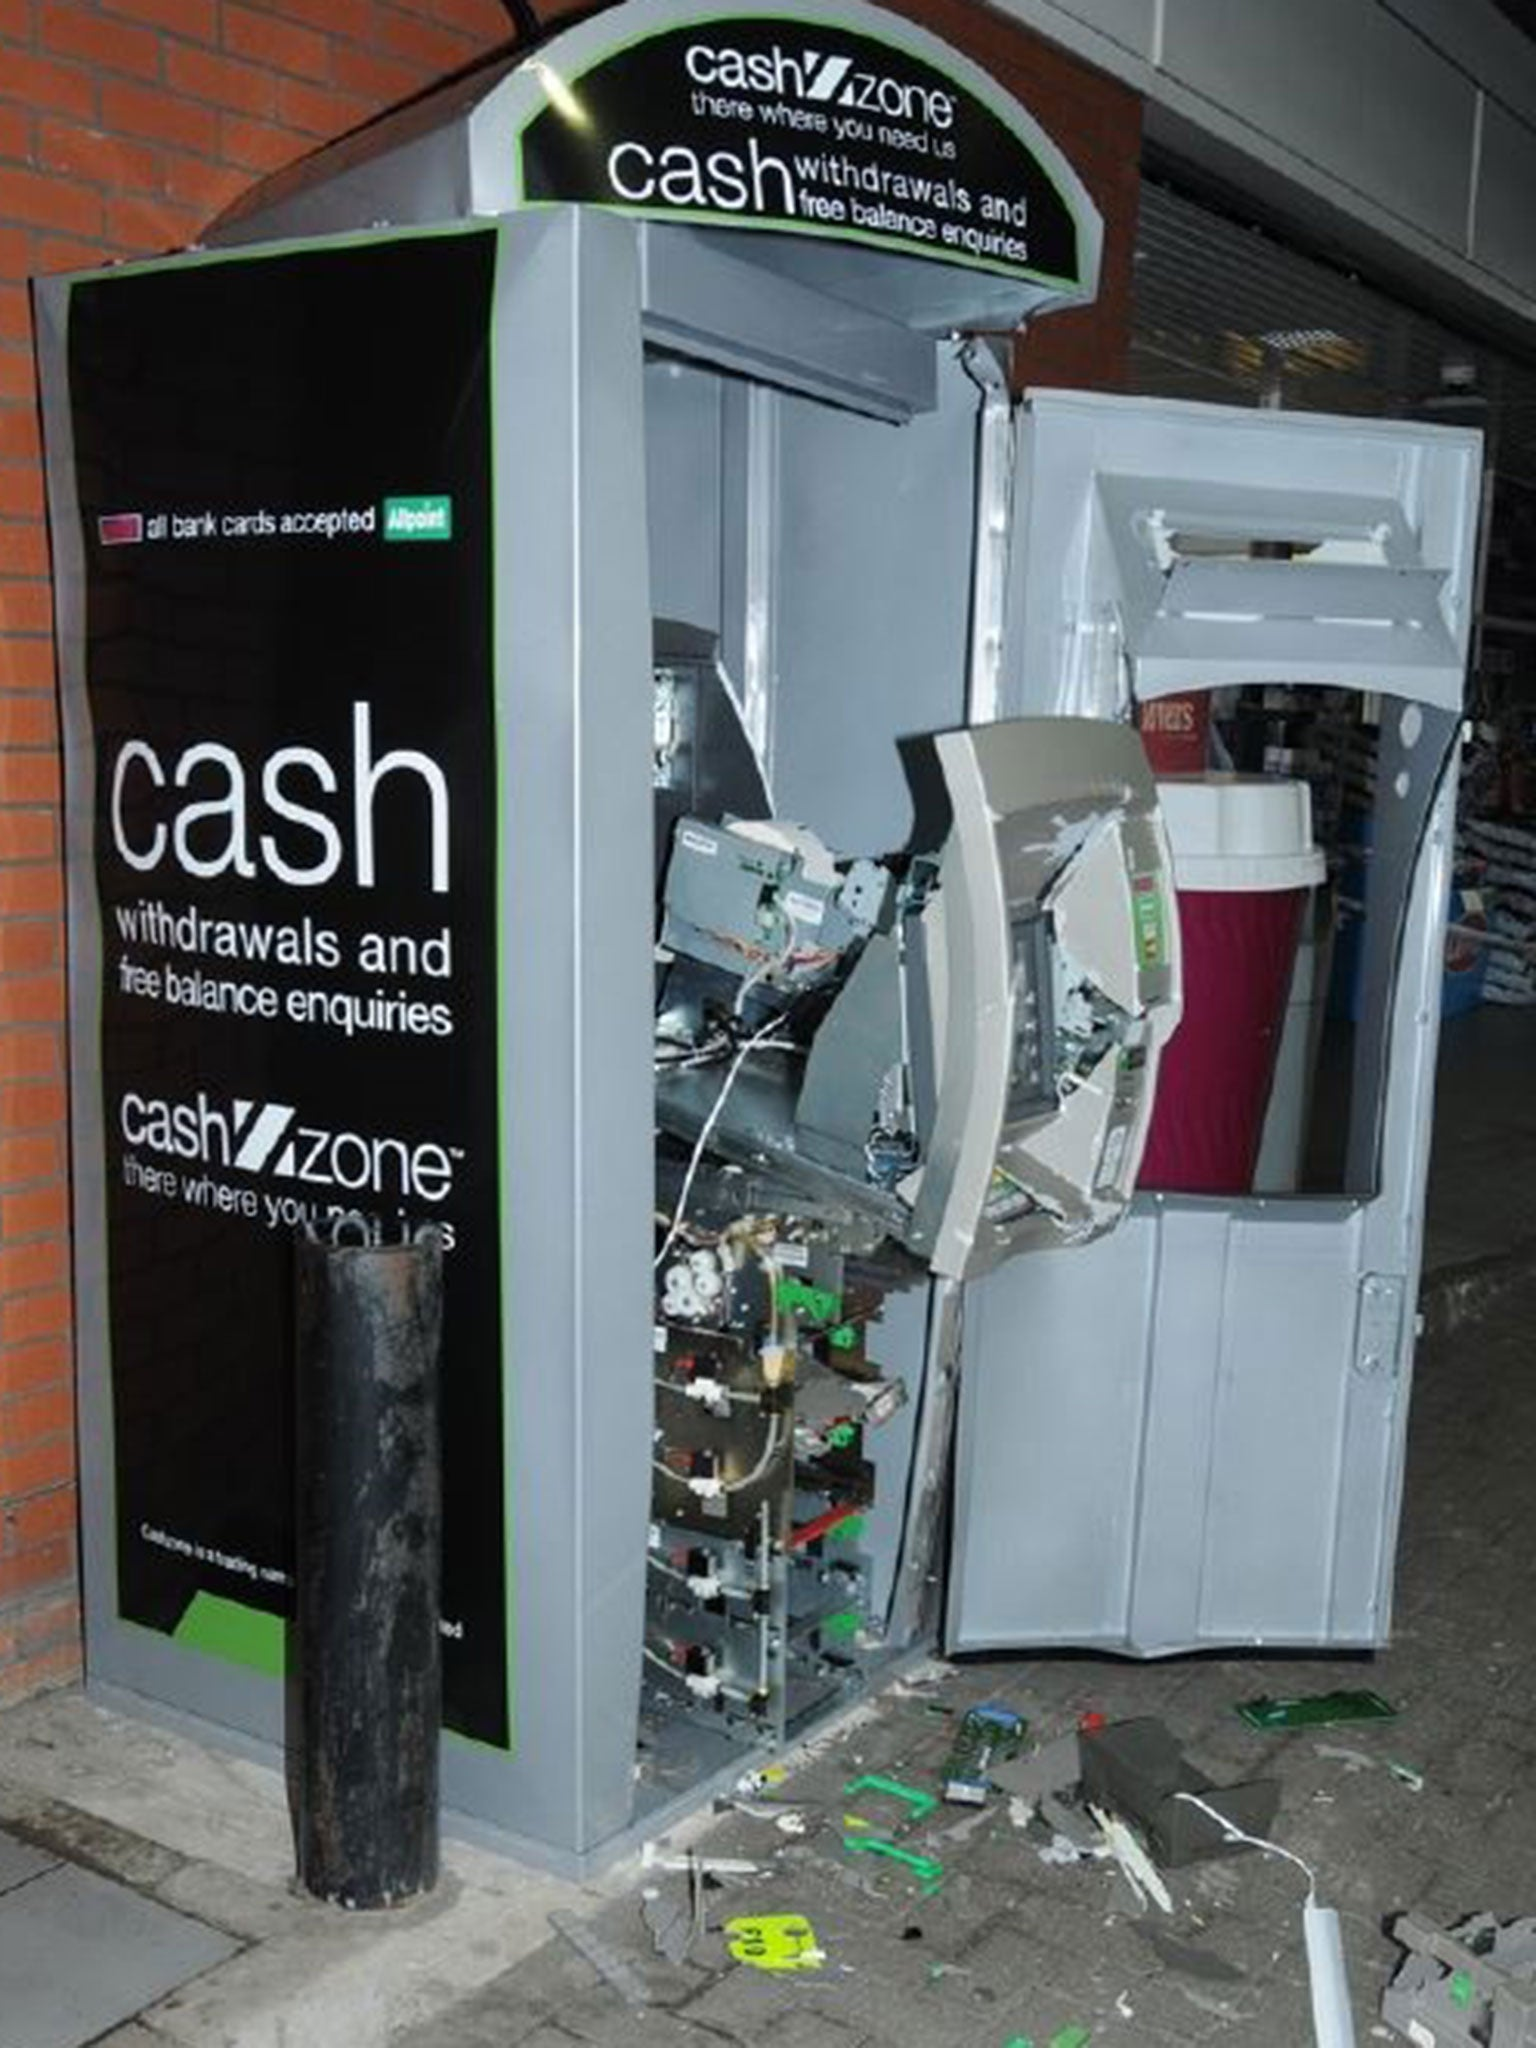 Thieves blowing up cash machines across UK in life-threatening trend ...